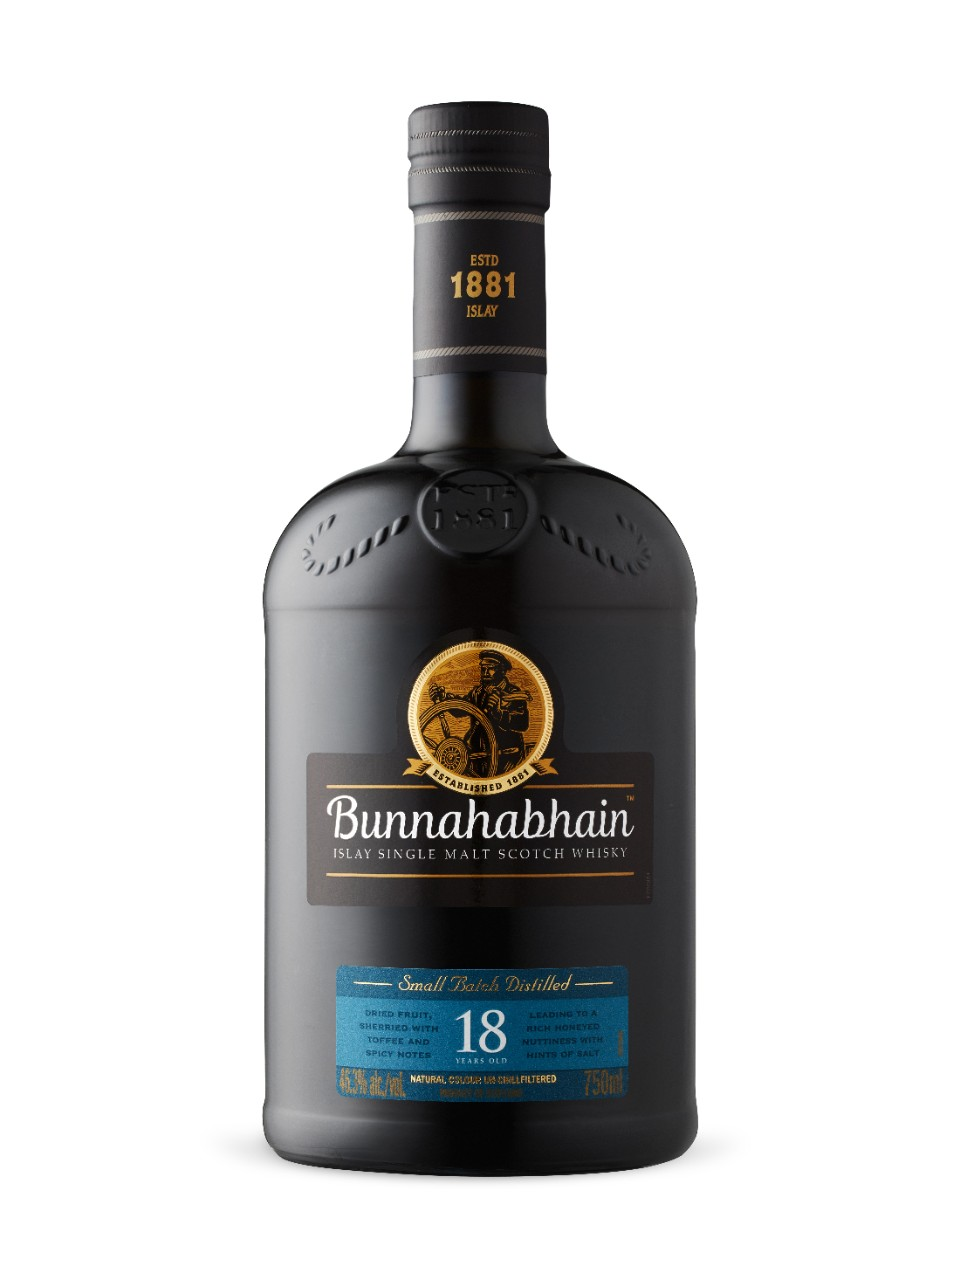 Image for Bunnahabhain Small Batch Distilled 18-Year-Old Islay Single Malt Scotch Whisky from LCBO